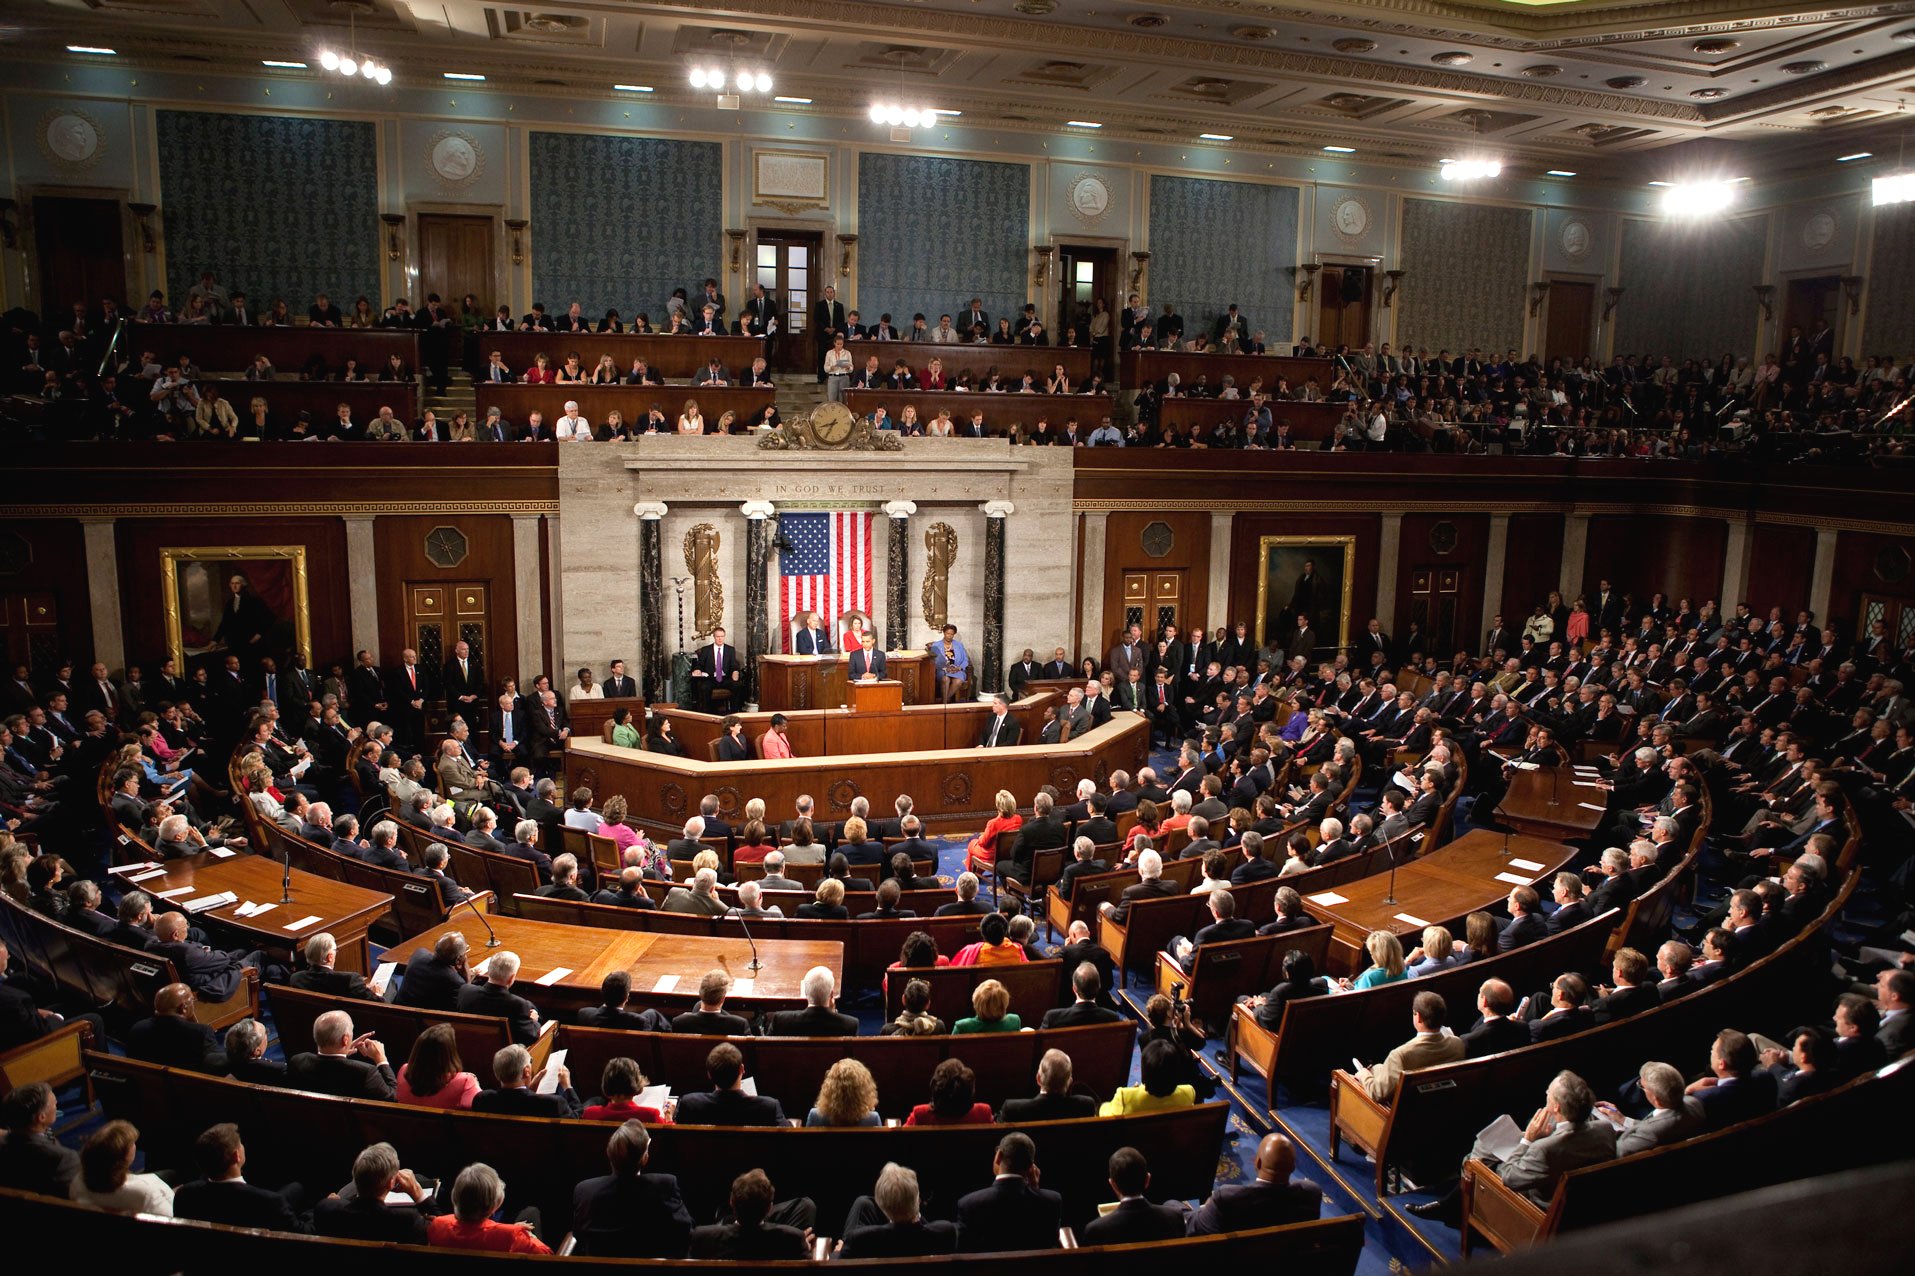 President Barack Obama delivers a health care address to a joint session of Congress at the United States Capitol in Washington, D.C., Sept. 9, 2009. (Official White House Photo by Lawrence Jackson) This official White House photograph is being made available only for publication by news organizations and/or for personal use printing by the subject(s) of the photograph. The photograph may not be manipulated in any way and may not be used in commercial or political materials, advertisements, emails, products, promotions that in any way suggests approval or endorsement of the President, the First Family, or the White House.